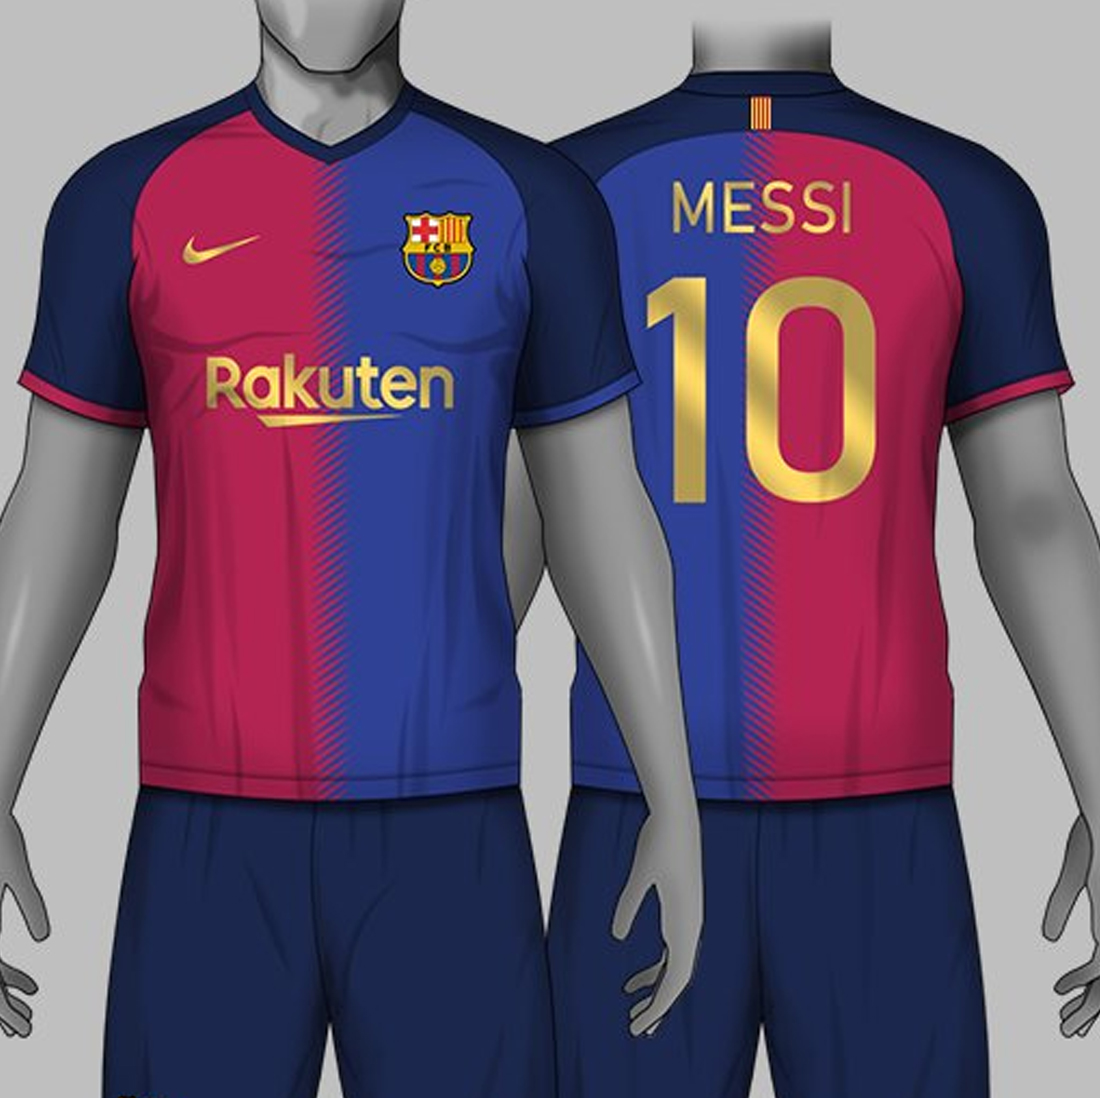 a785885ff The first Nike FC Barcelona home kit concept is inspired by Barcelona s 1997  -98 Kappa